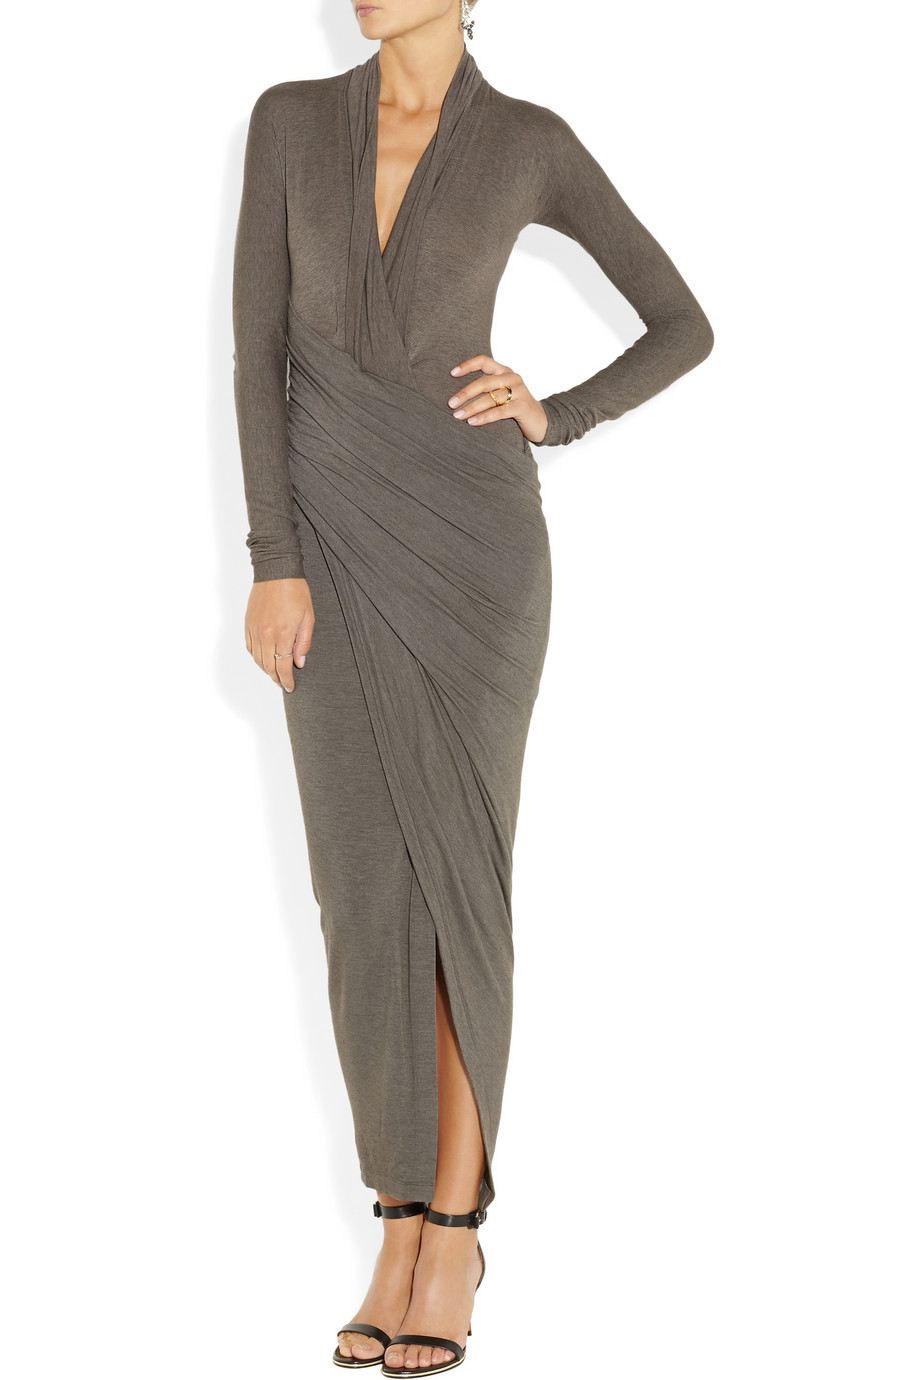 Lyst Donna Karan Draped Wrapeffect Jersey Dress In Gray